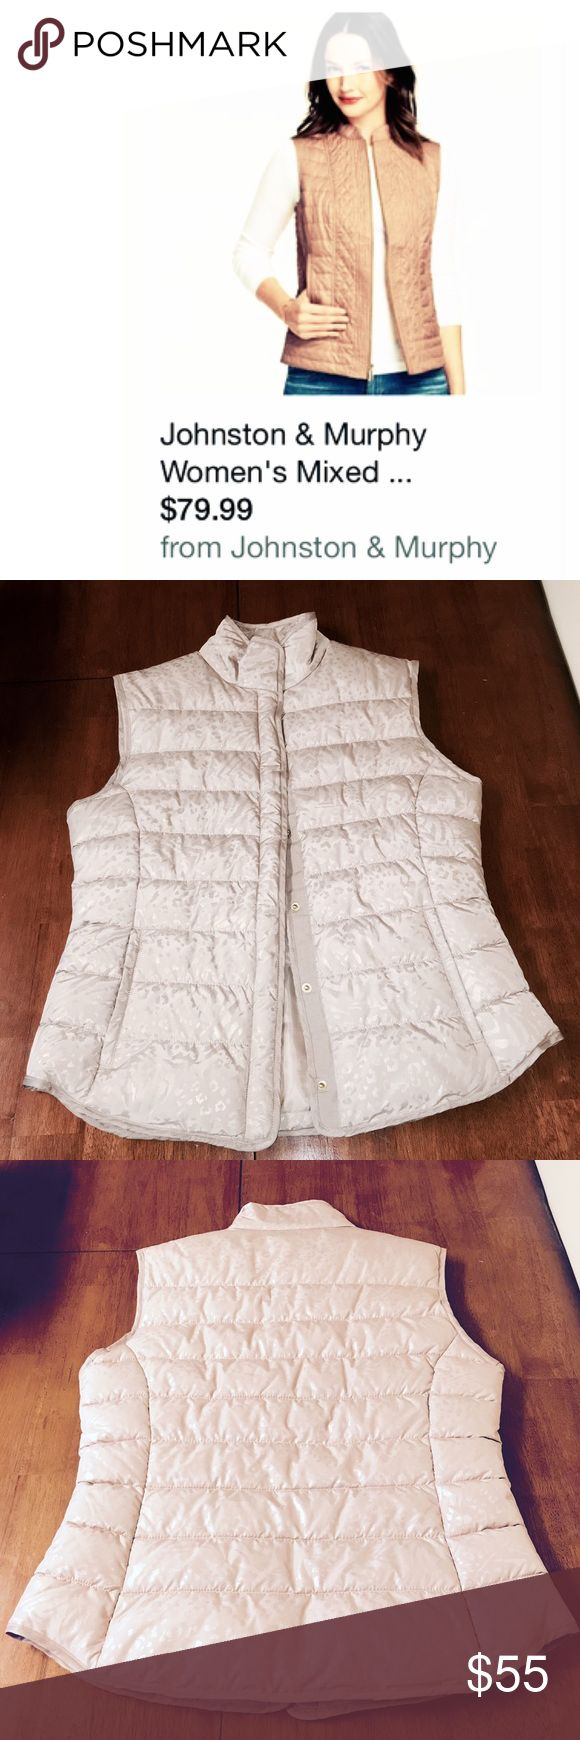 """🔆NWT🔆 J&M Superior-quality quilted pattern vest❣ 🔆NEW SAMPLE🔆INCLUDES FREE GIFT🔆Since 1850 company, """"JOHNSTON AND MURPHY"""" has been known for its ability to produce the most* superior high-quality fashion offering both class and comfort. Just in we have a brand new sample for this new line of quilted fashion vests arriving end of 2016.🔅BUY NOW BEFORE SOLD OUT🔅SHIPS TODAY🔅RETAIL VALUE IS OVER $100! As shown above last years style is now on -SALE- for $80.00.. This is a deal! 🚫NO LOW…"""